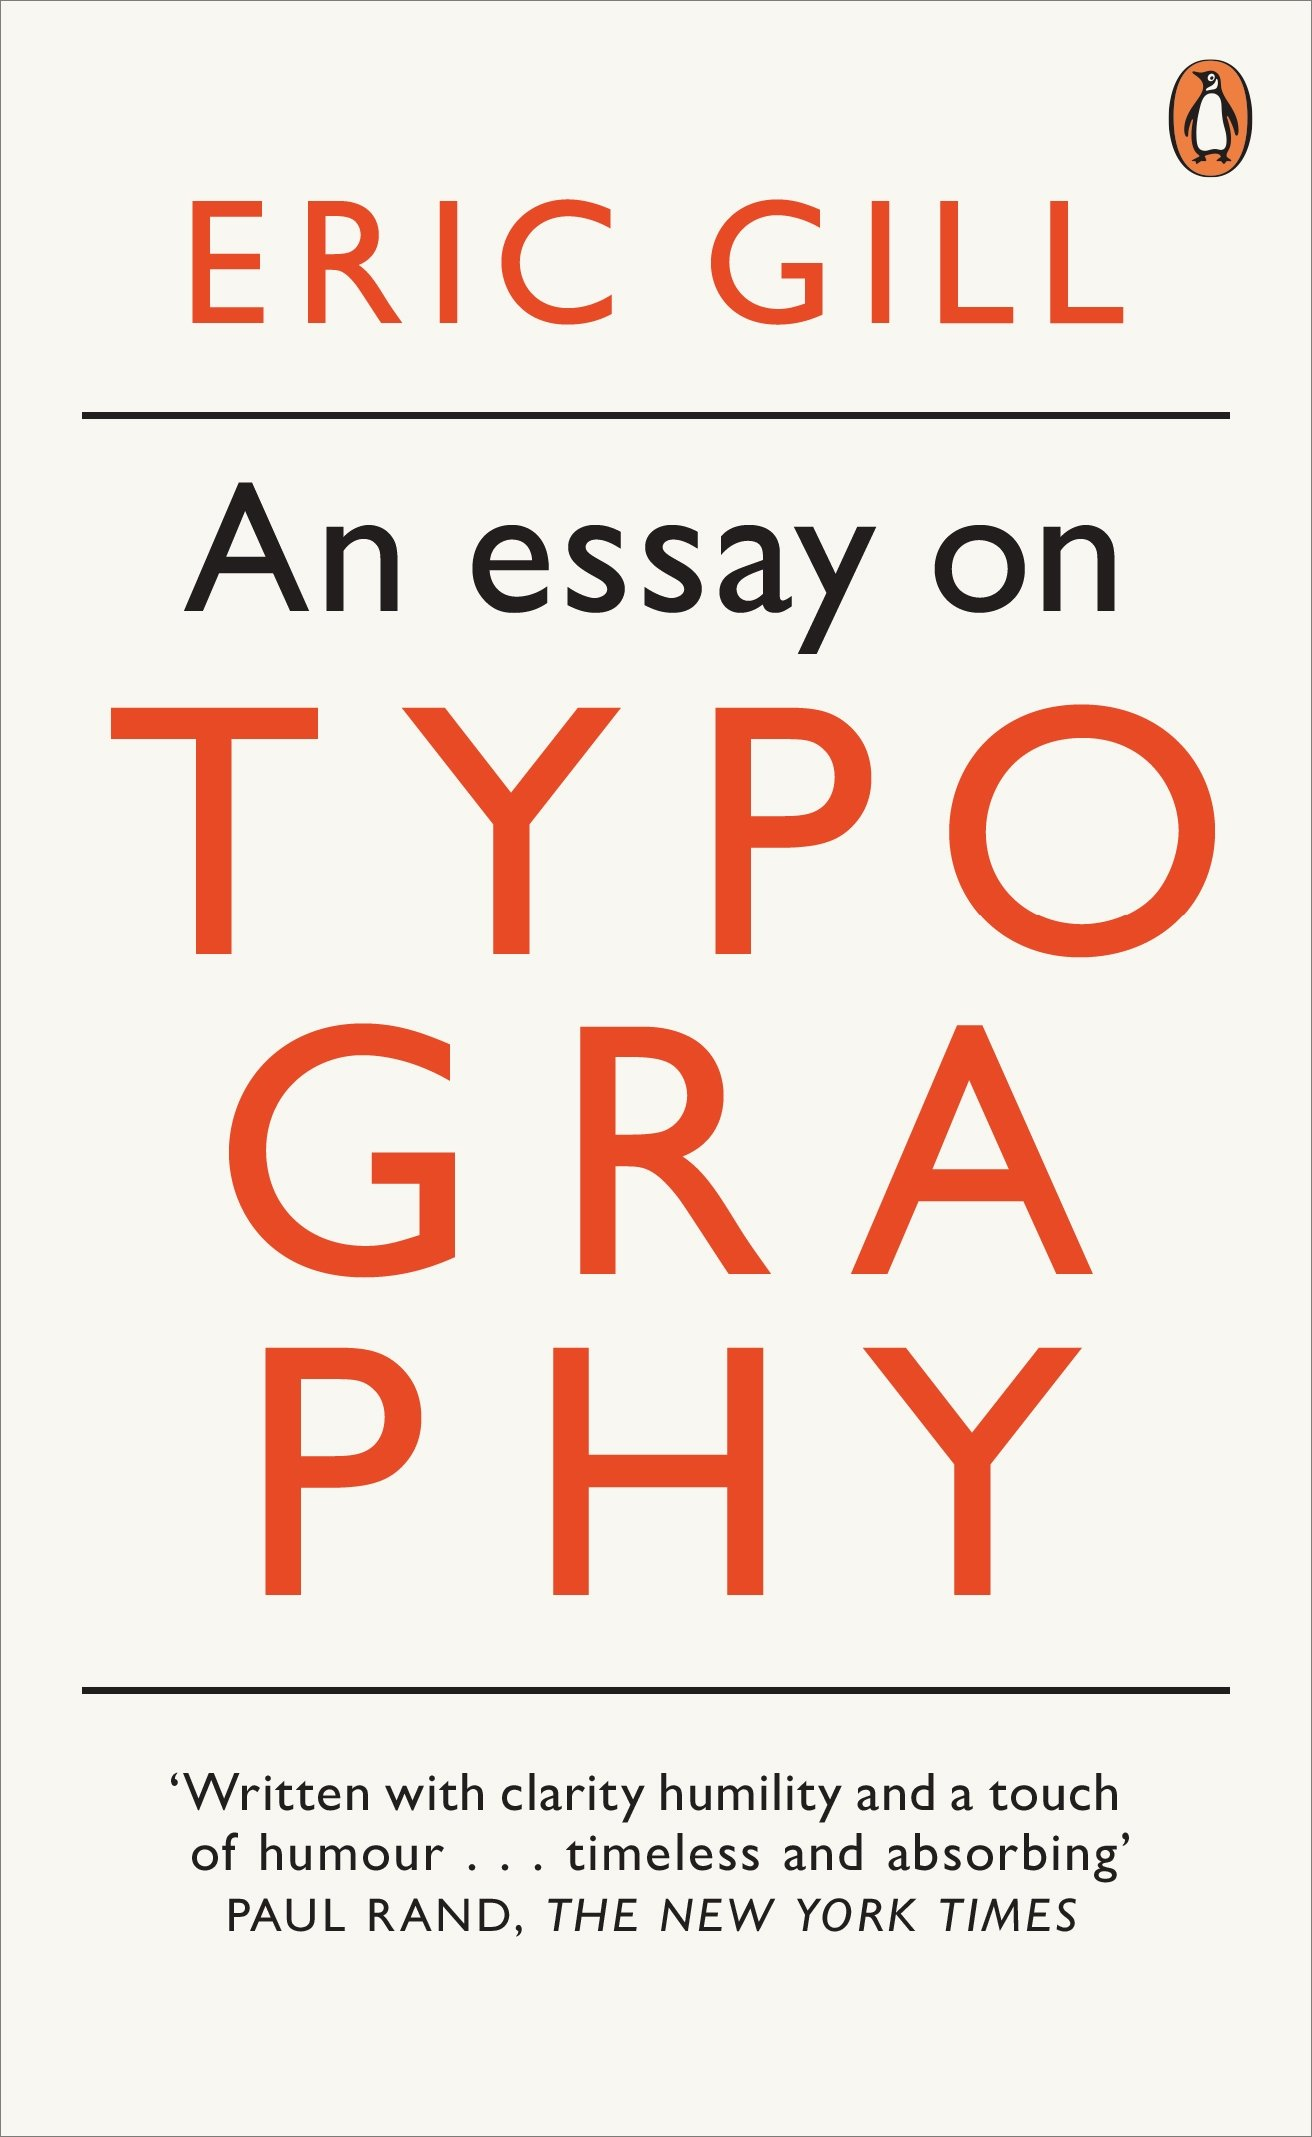 an essay on typography penguin modern classics amazon co uk an essay on typography penguin modern classics amazon co uk eric gill 9780141393568 books